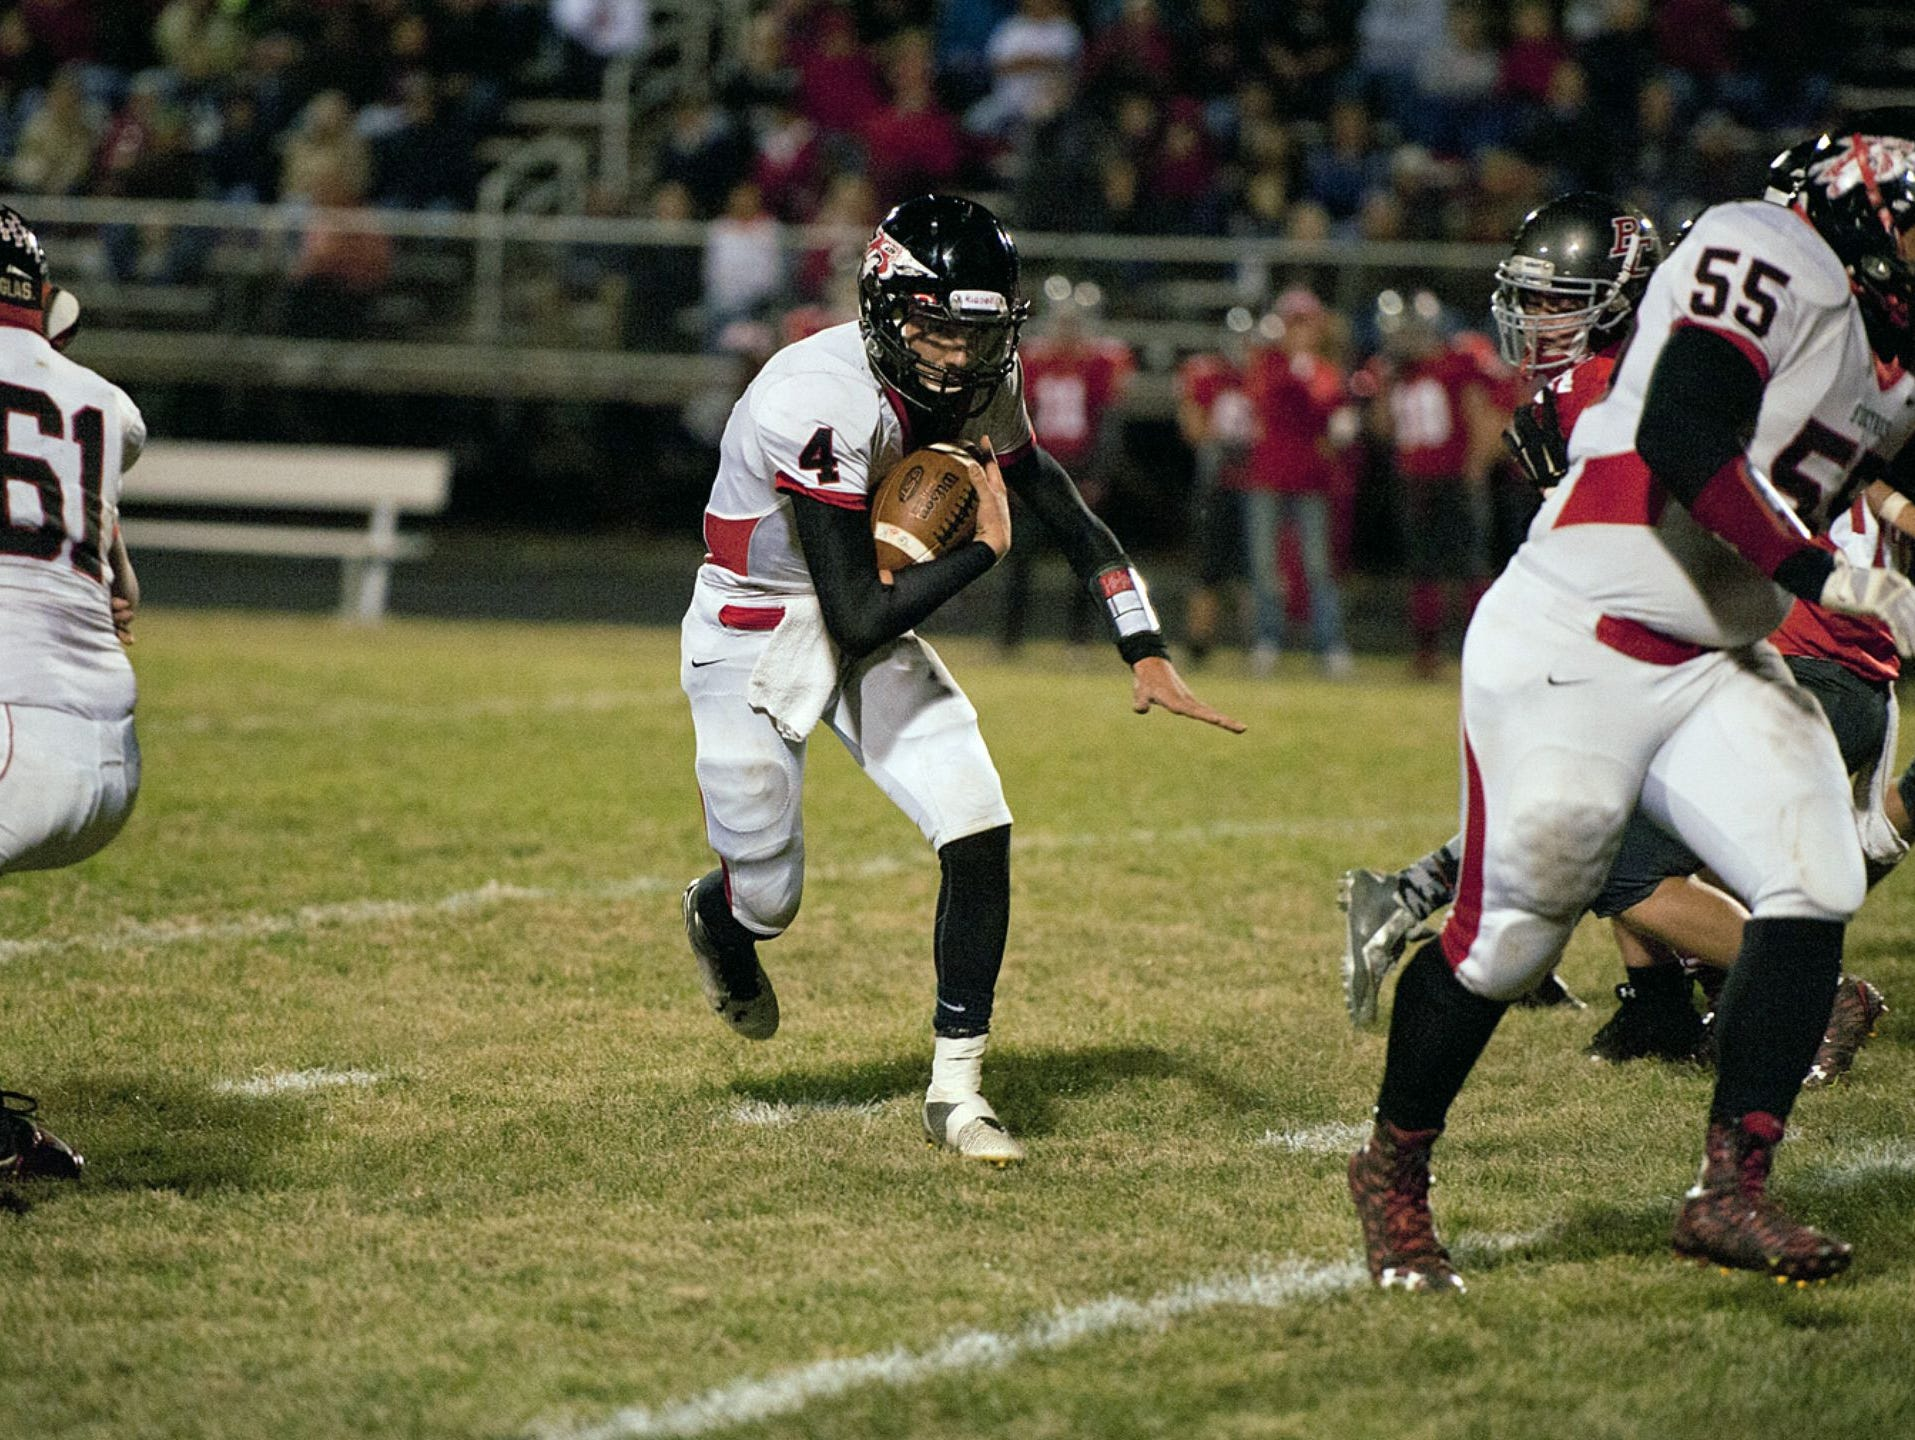 Bucyrus sophomore quarterback Damon Parsell will look to build on an impressive Week 7 performance.